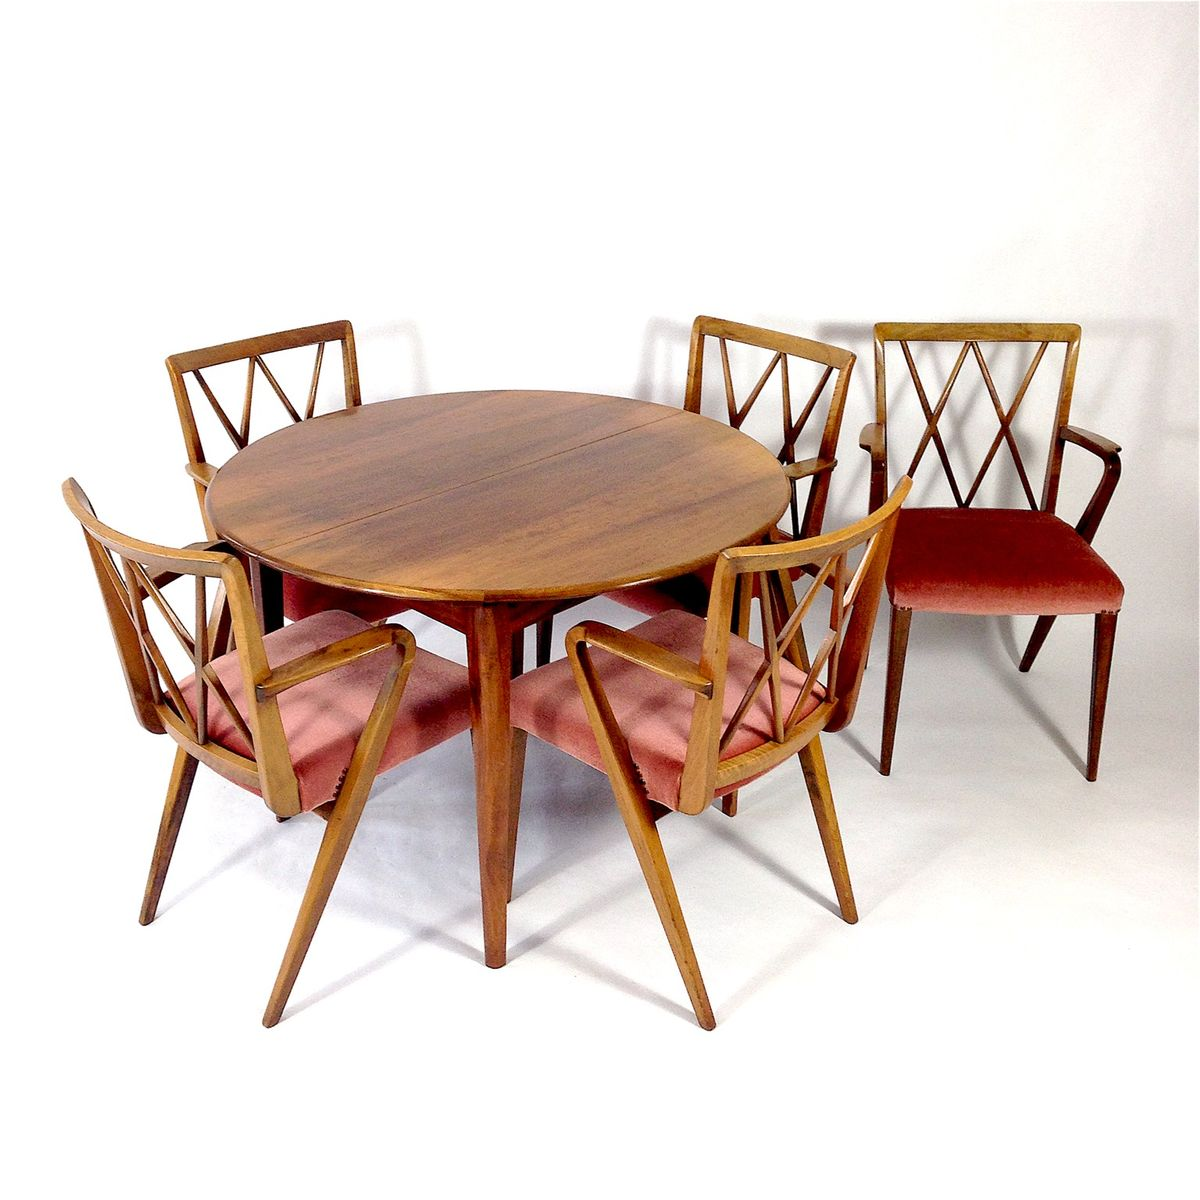 POLY-Z Dining Set by AA Patijn for Zijlstra, 1950s for sale at Pamono